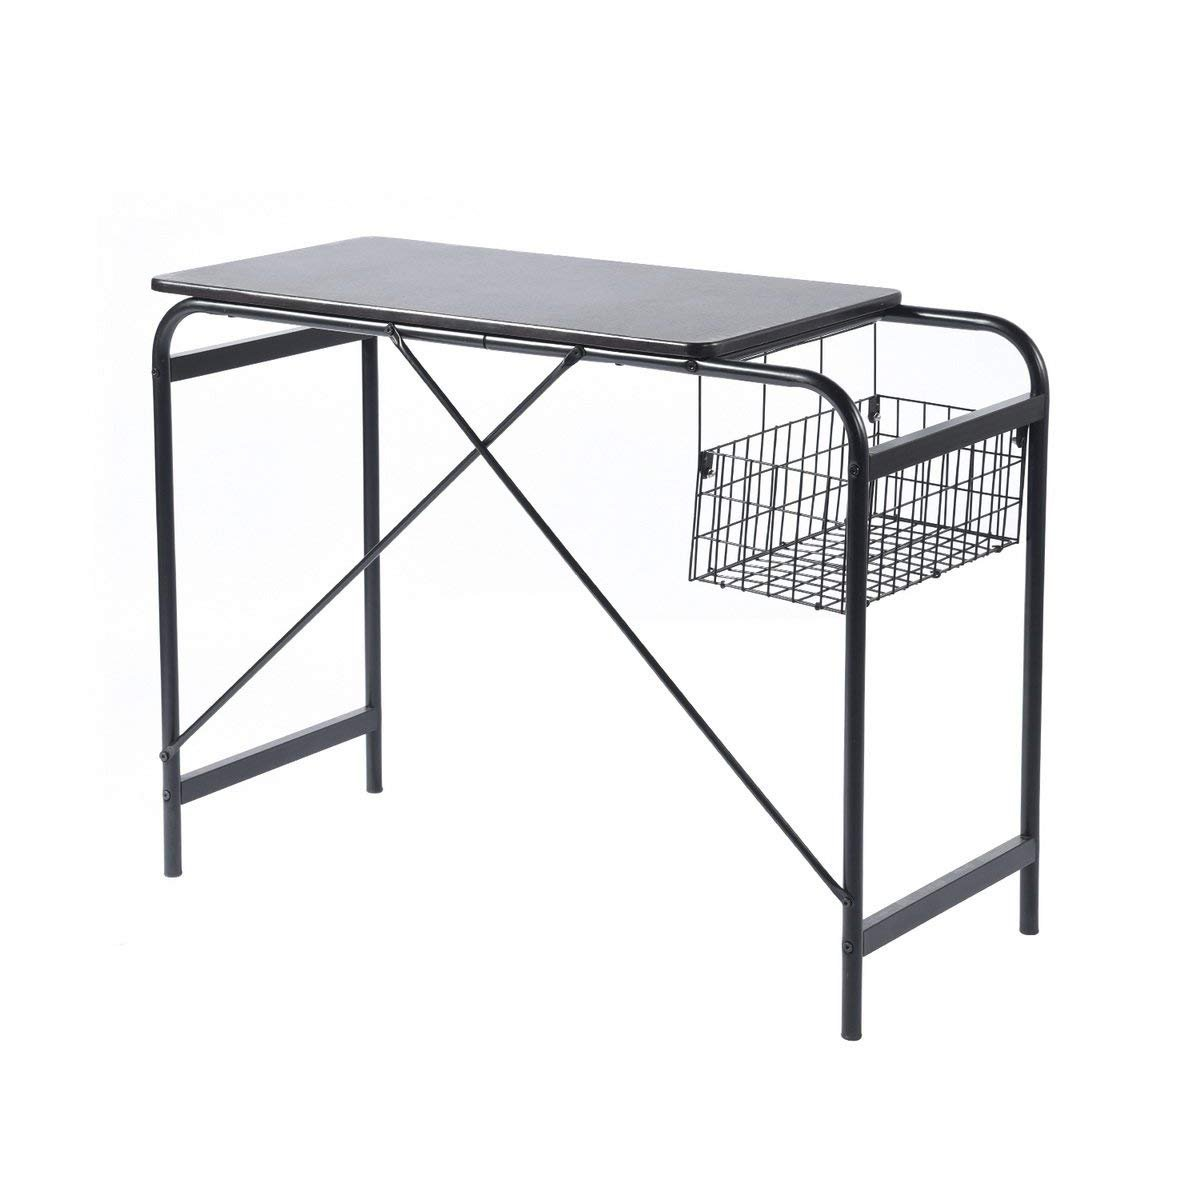 Computer Writing Desk With Metal Basket Storage Industrial Modern Simple Black Wooden Study Workstation Space Saving Table Ideal for Home Office Dormitory Small Room or Corner, Dark Brown Coavas